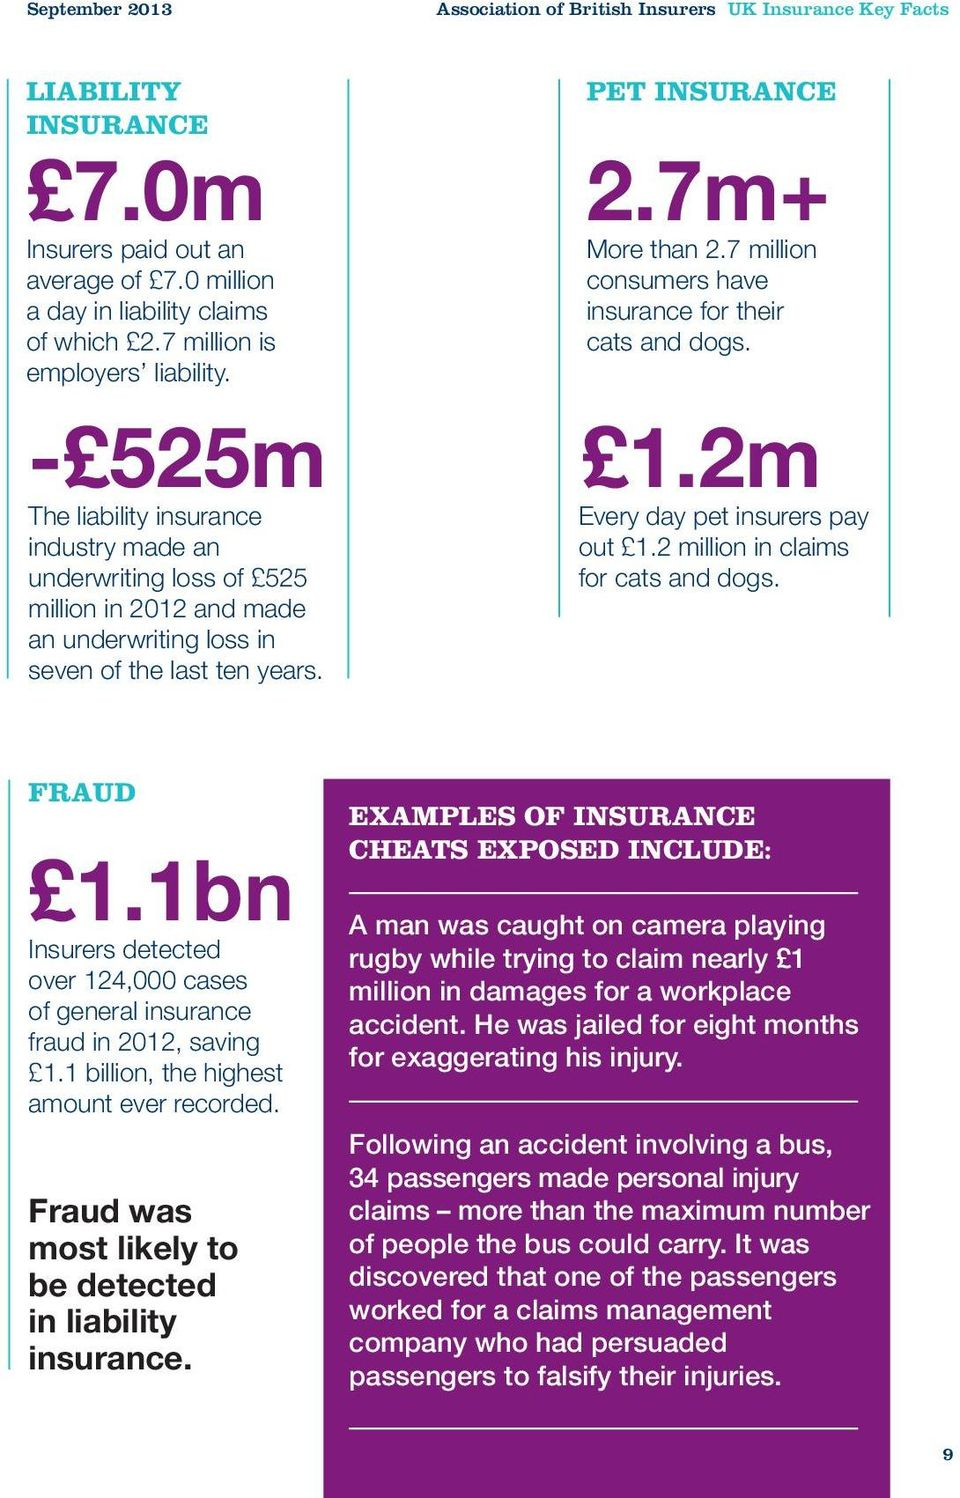 PET INSURANCE 2.7m+ More than 2.7 million consumers have insurance for their cats and dogs. 1.2m Every day pet insurers pay out 1.2 million in claims for cats and dogs. FRAUD 1.